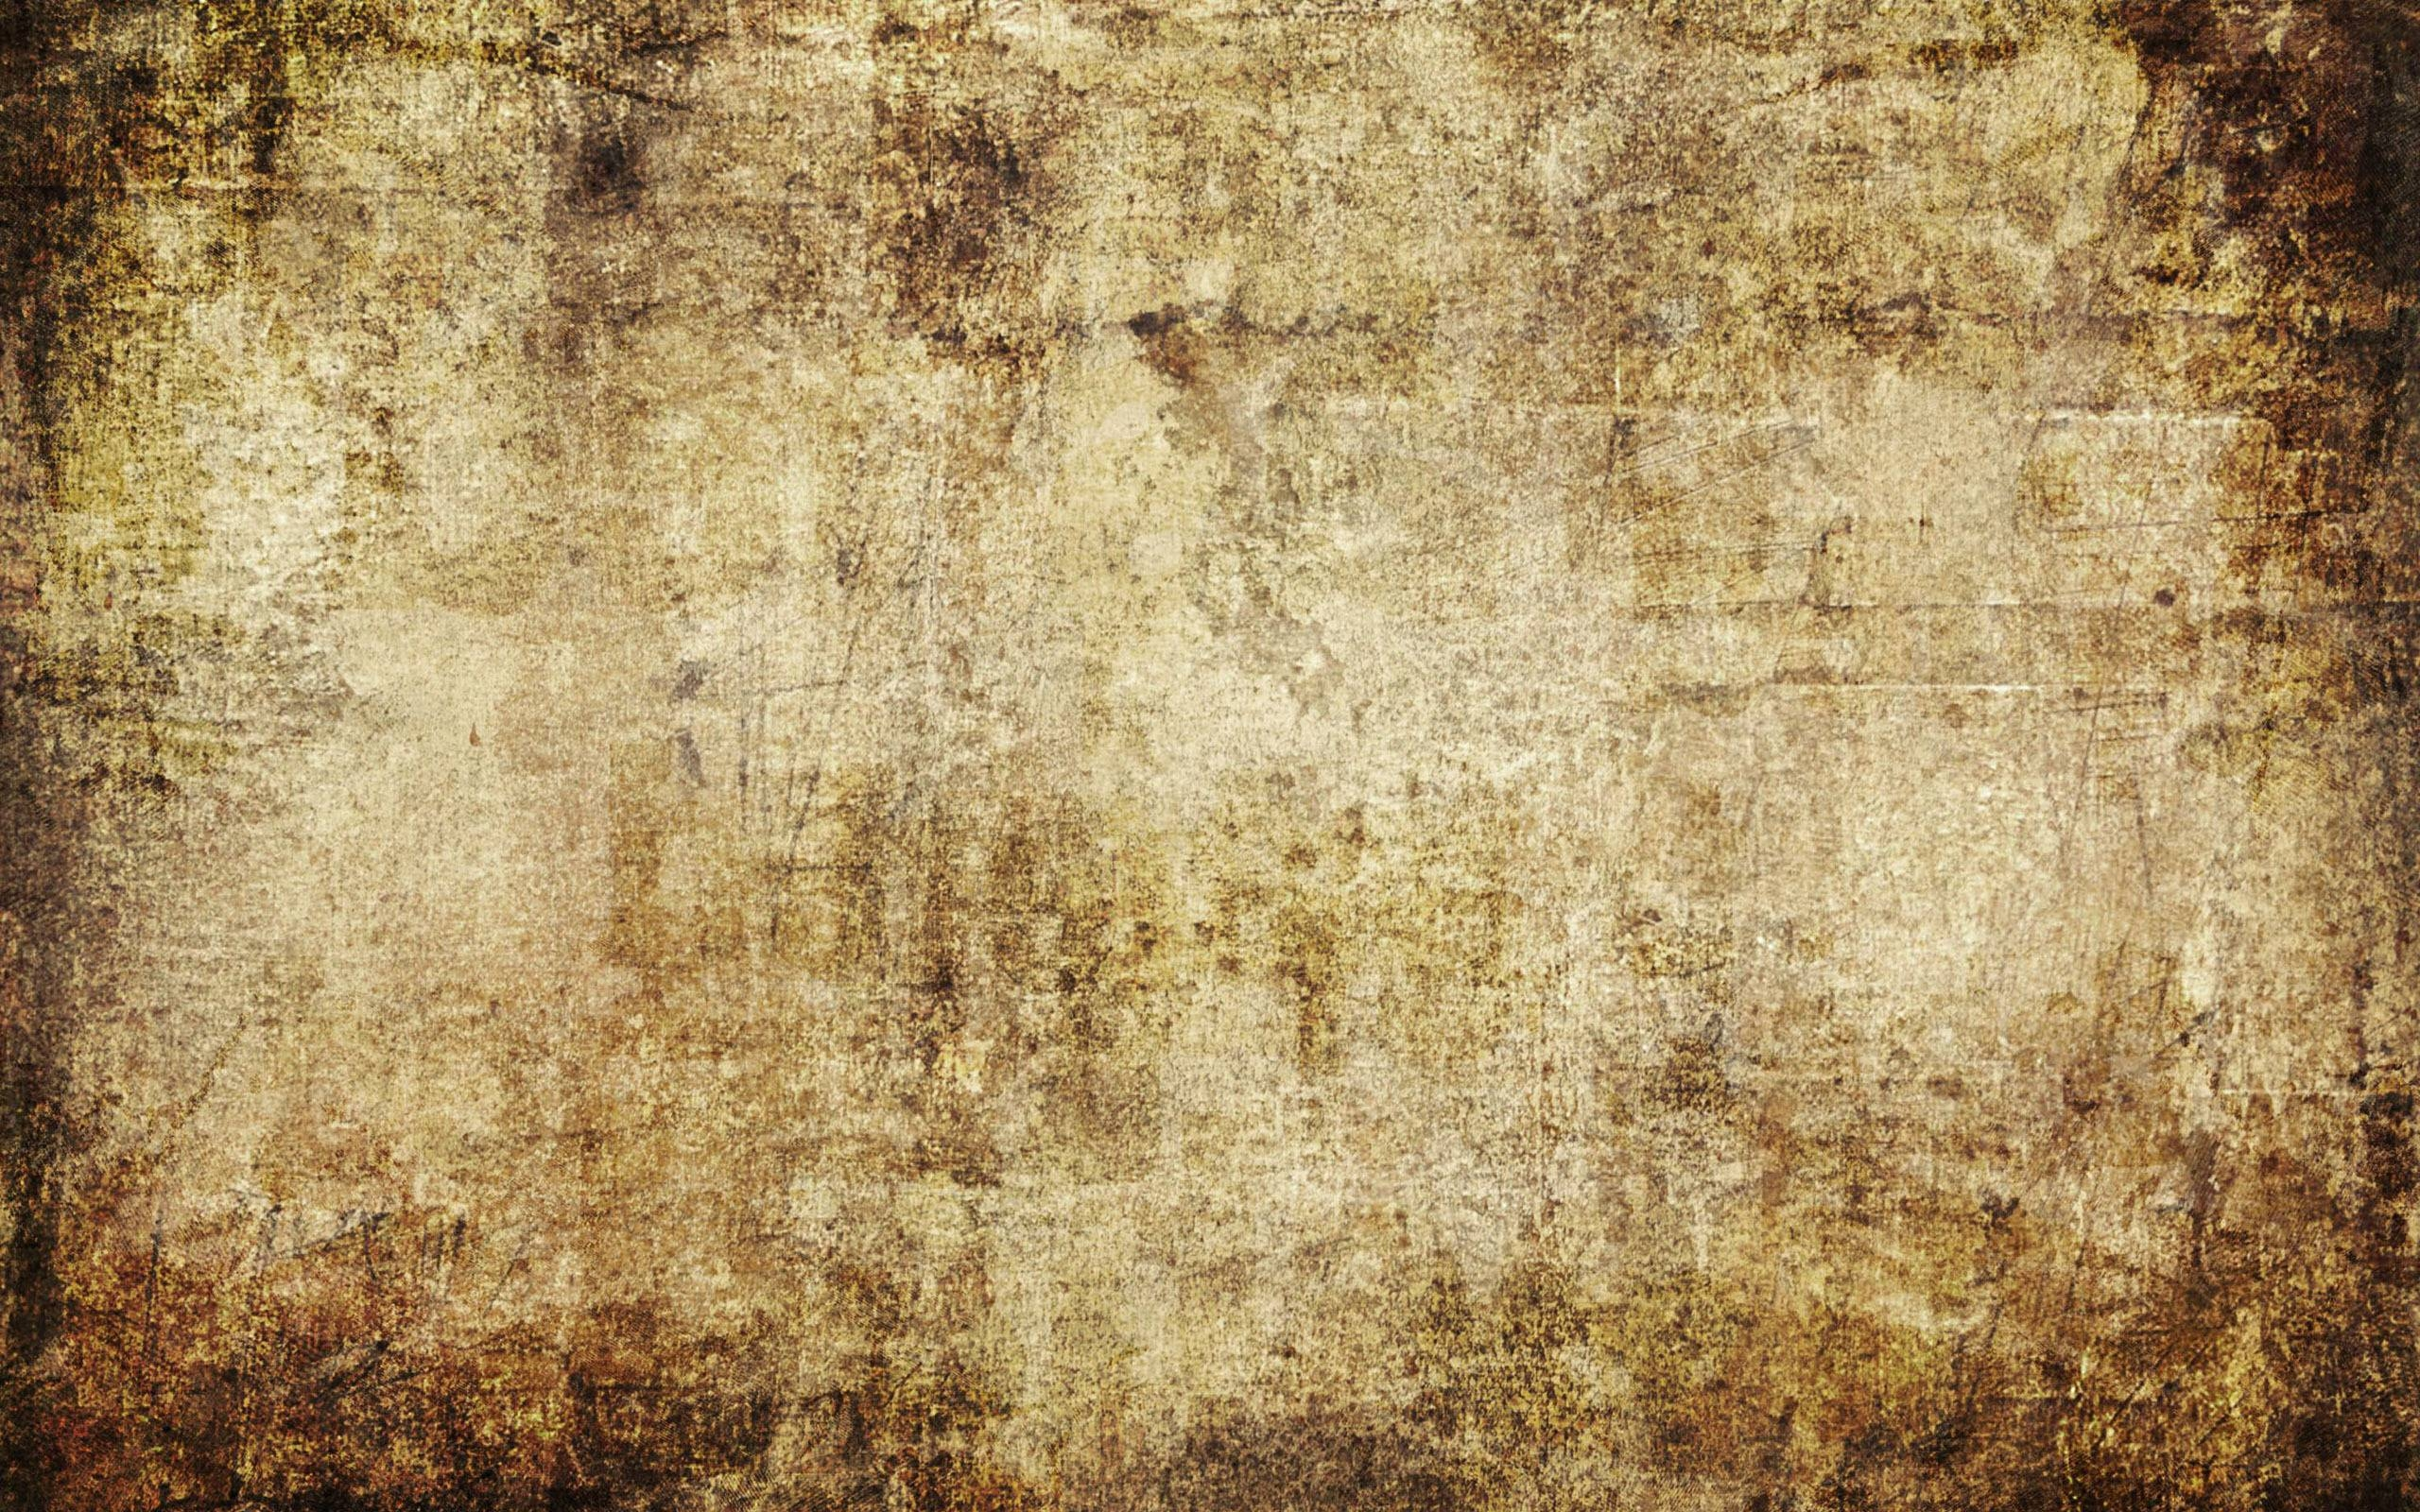 Brown Background Wallpaper with Grungy Effect